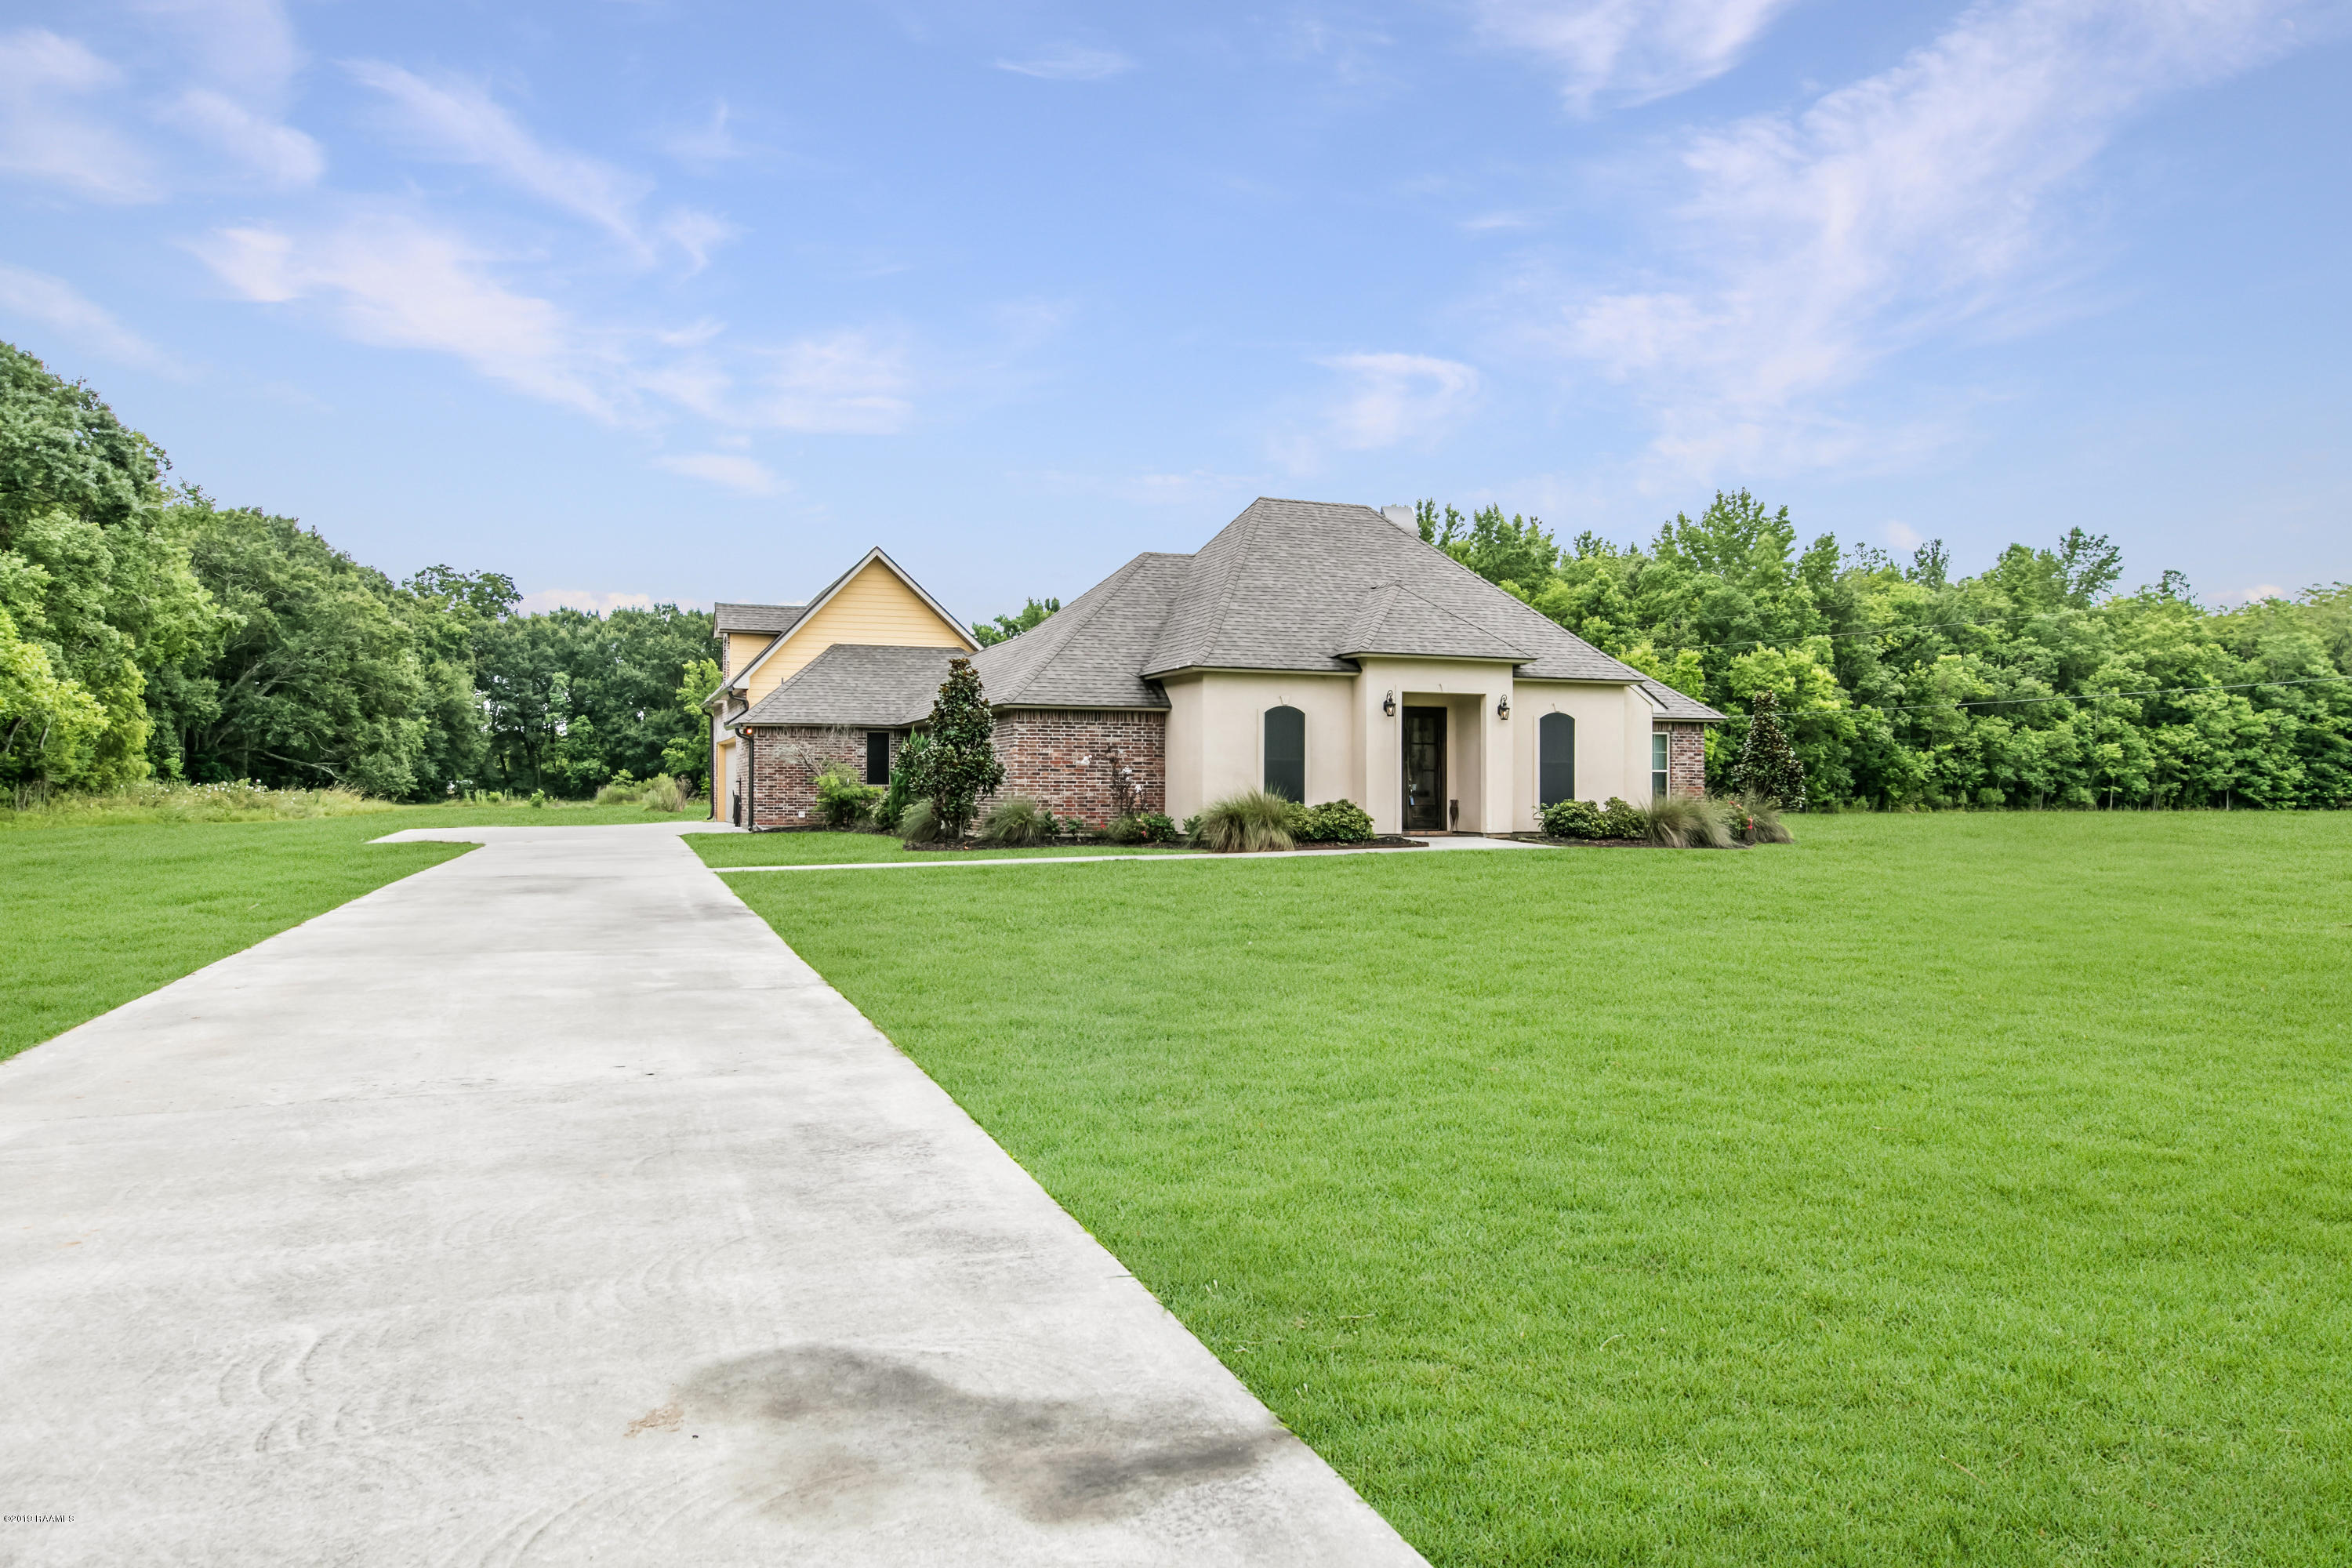 1061 Mcveigh Road, Arnaudville, LA 70512 Photo #3